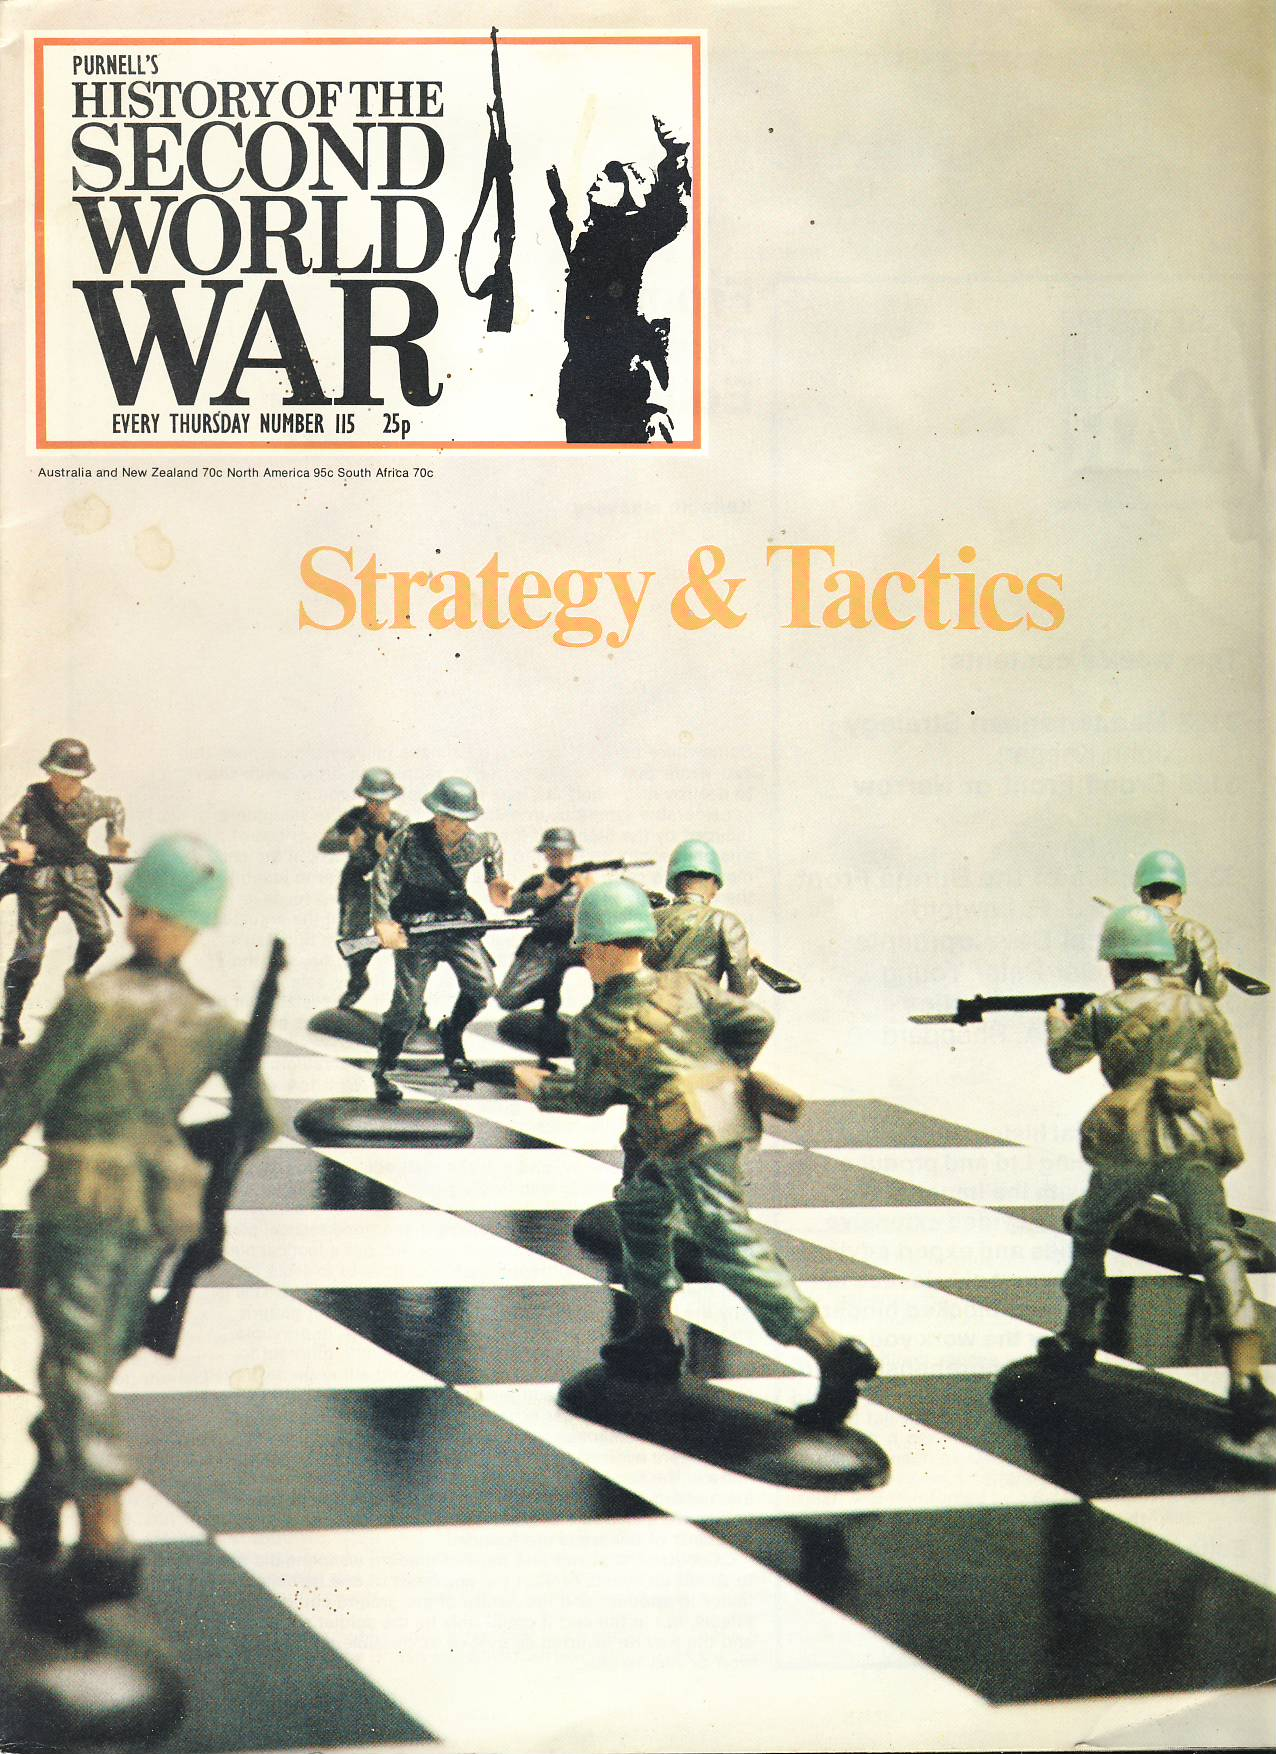 History of the Second World War Magazine #115 Strategy & Tactics A vintage Purnell's weekly magazine in good read condition. Please see larger photo and full description for details.